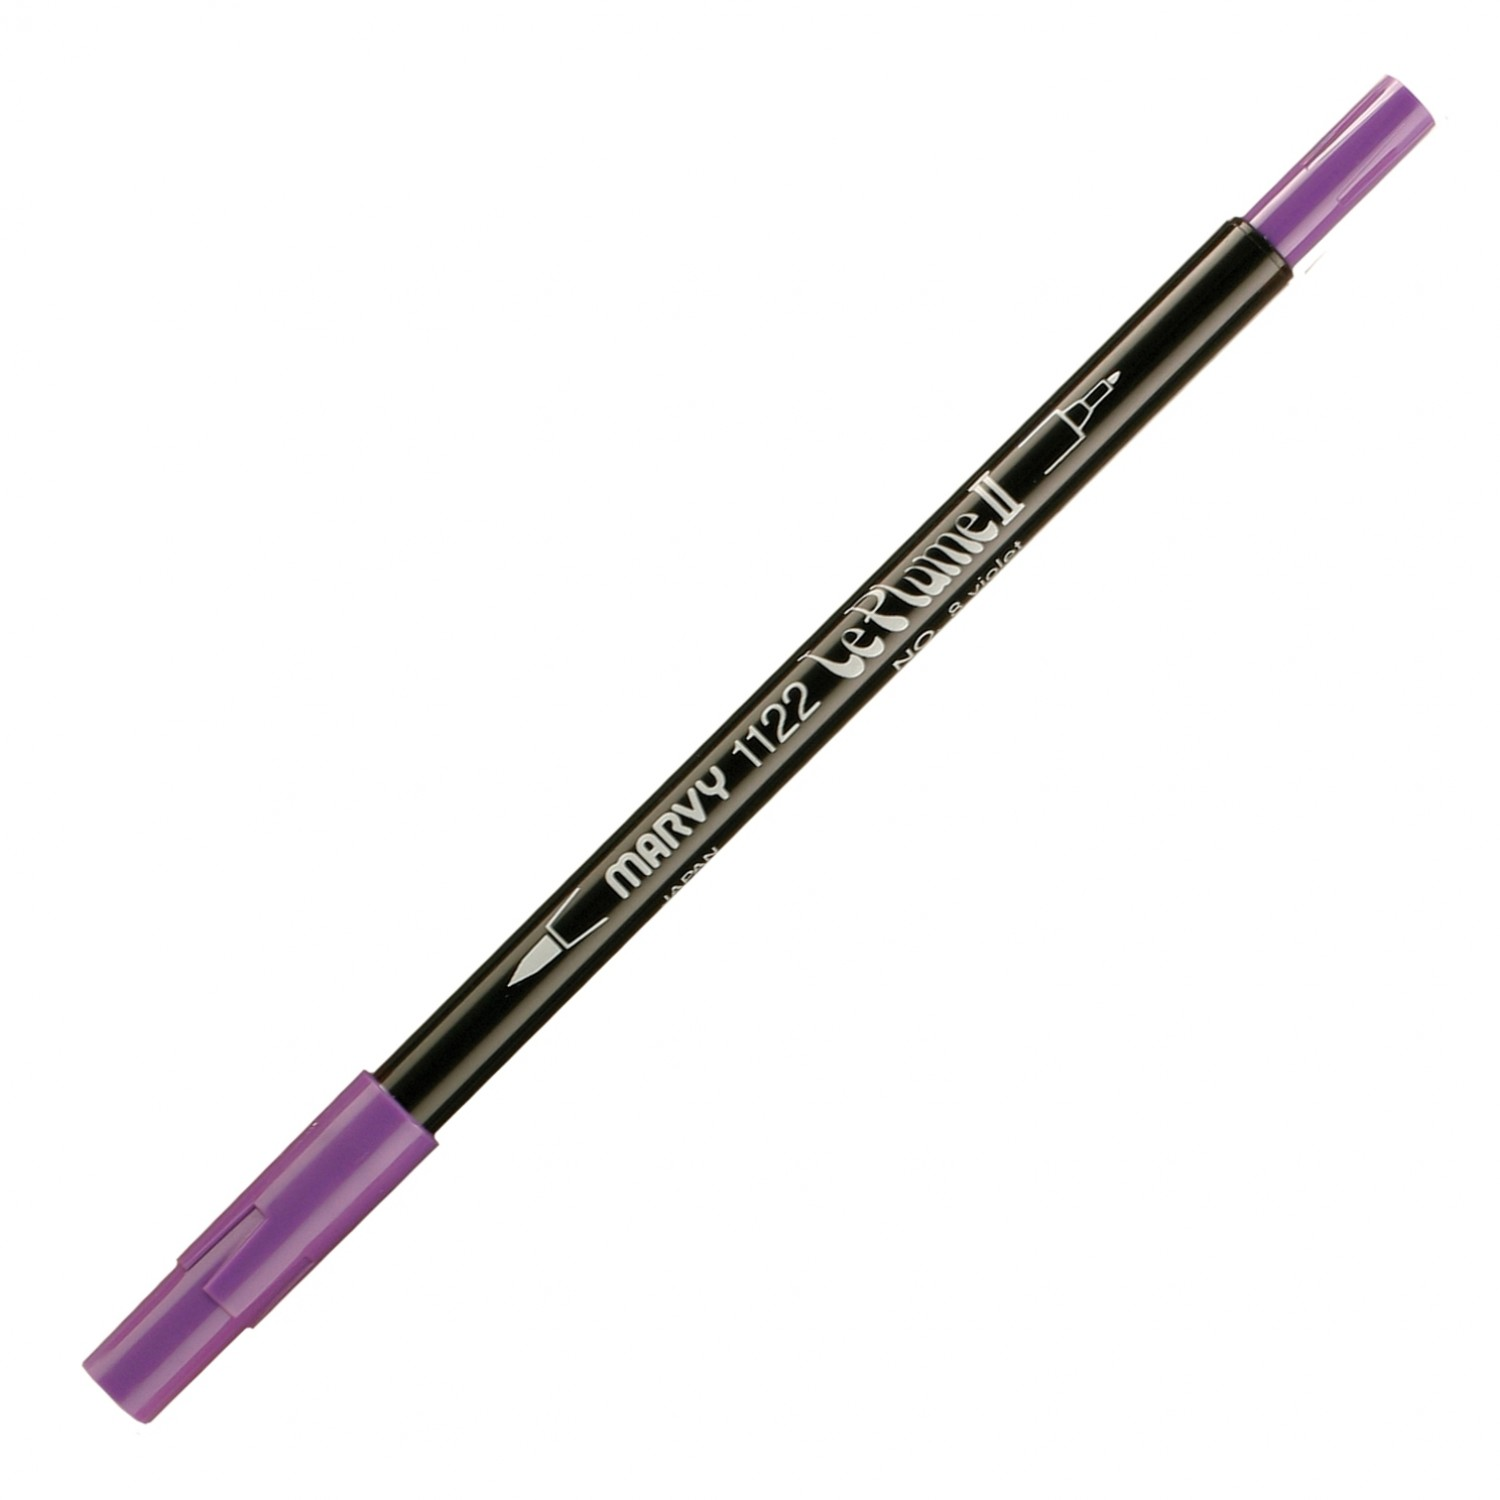 Marvy Le Plume II Double Ended Watercolor Marker, Violet